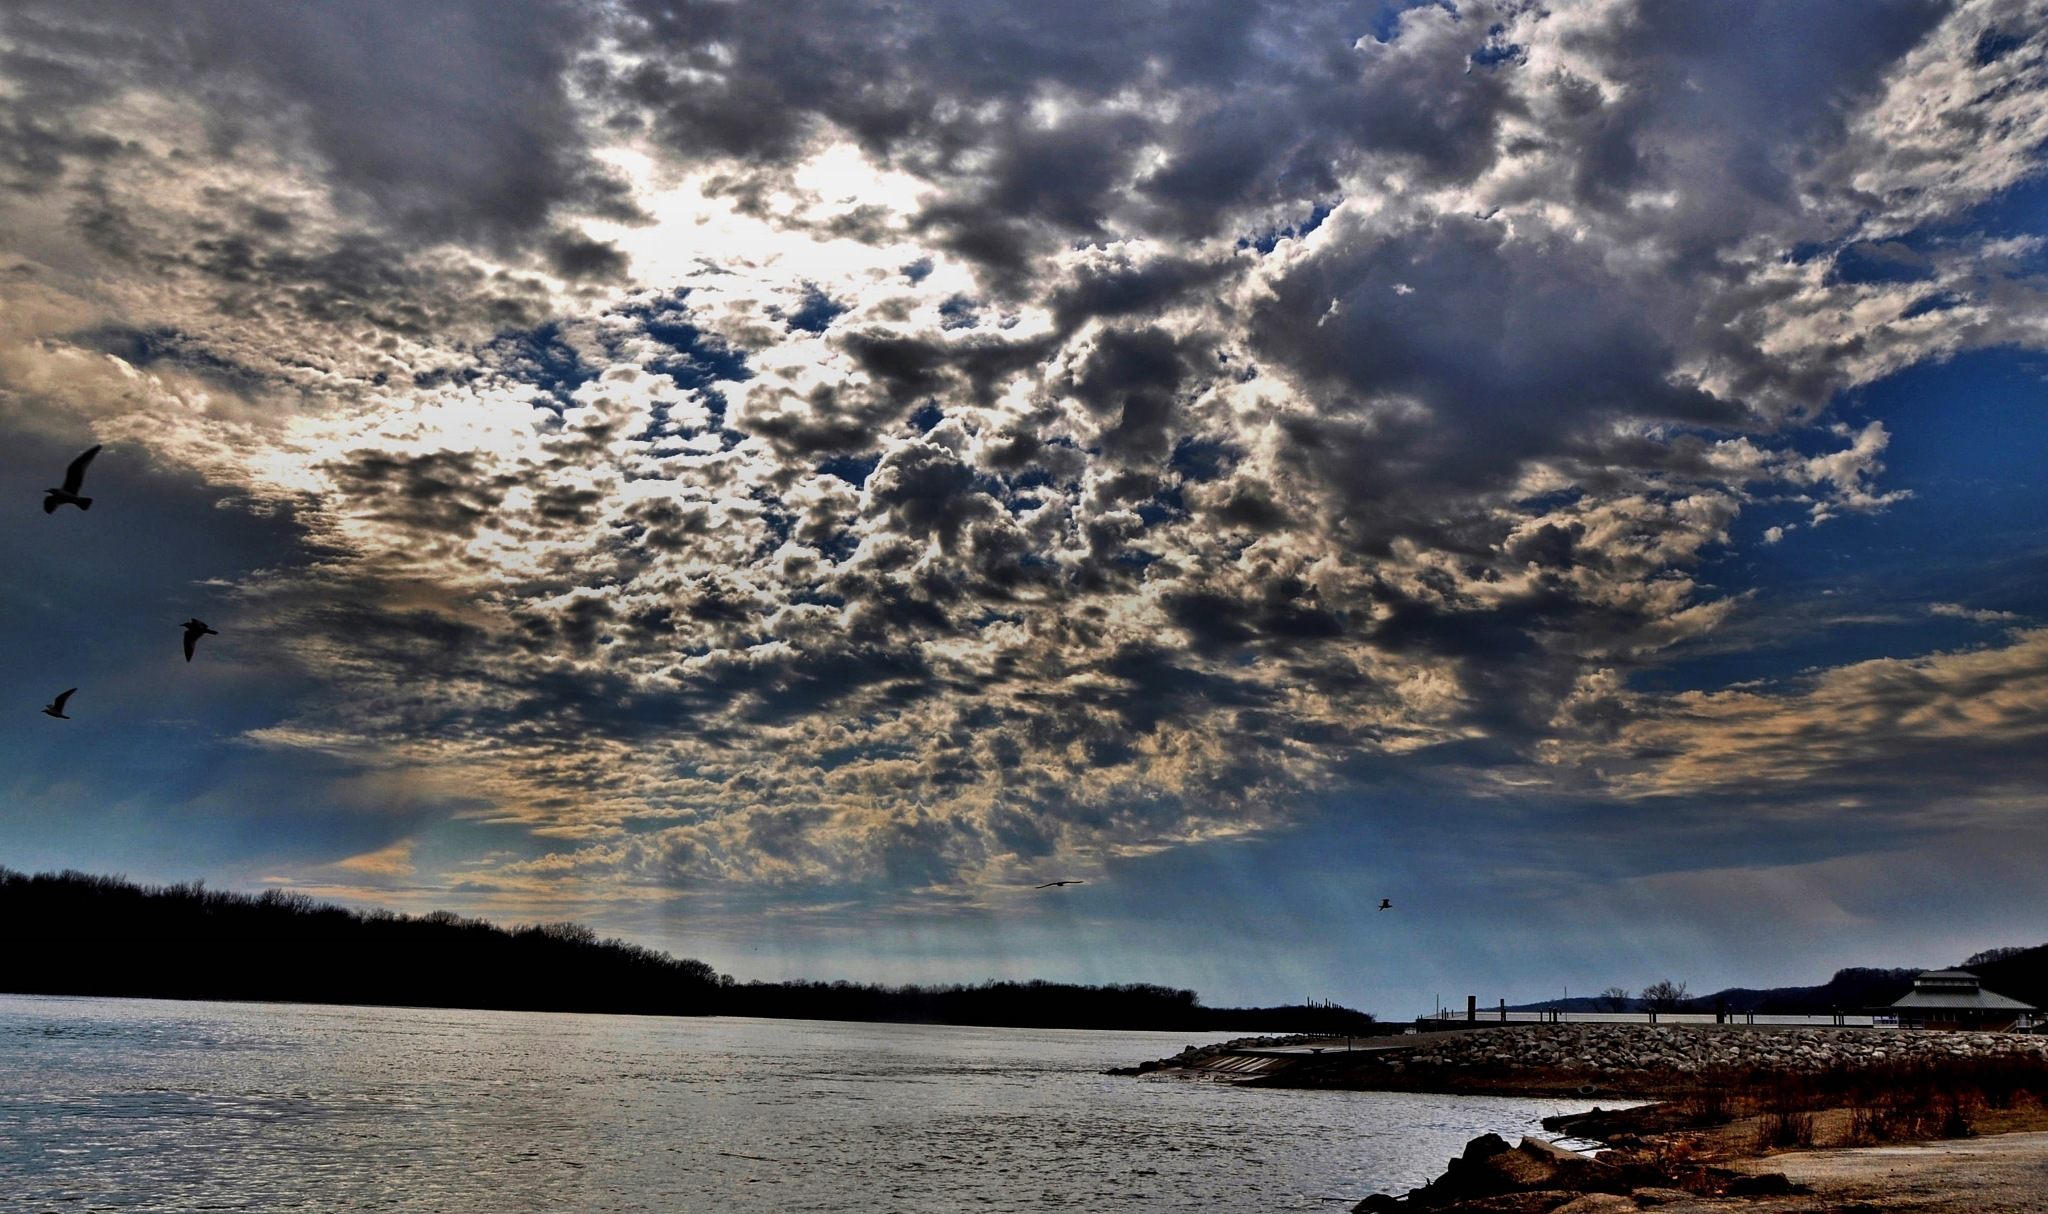 Clouds at the Illinois river. by debbylesko